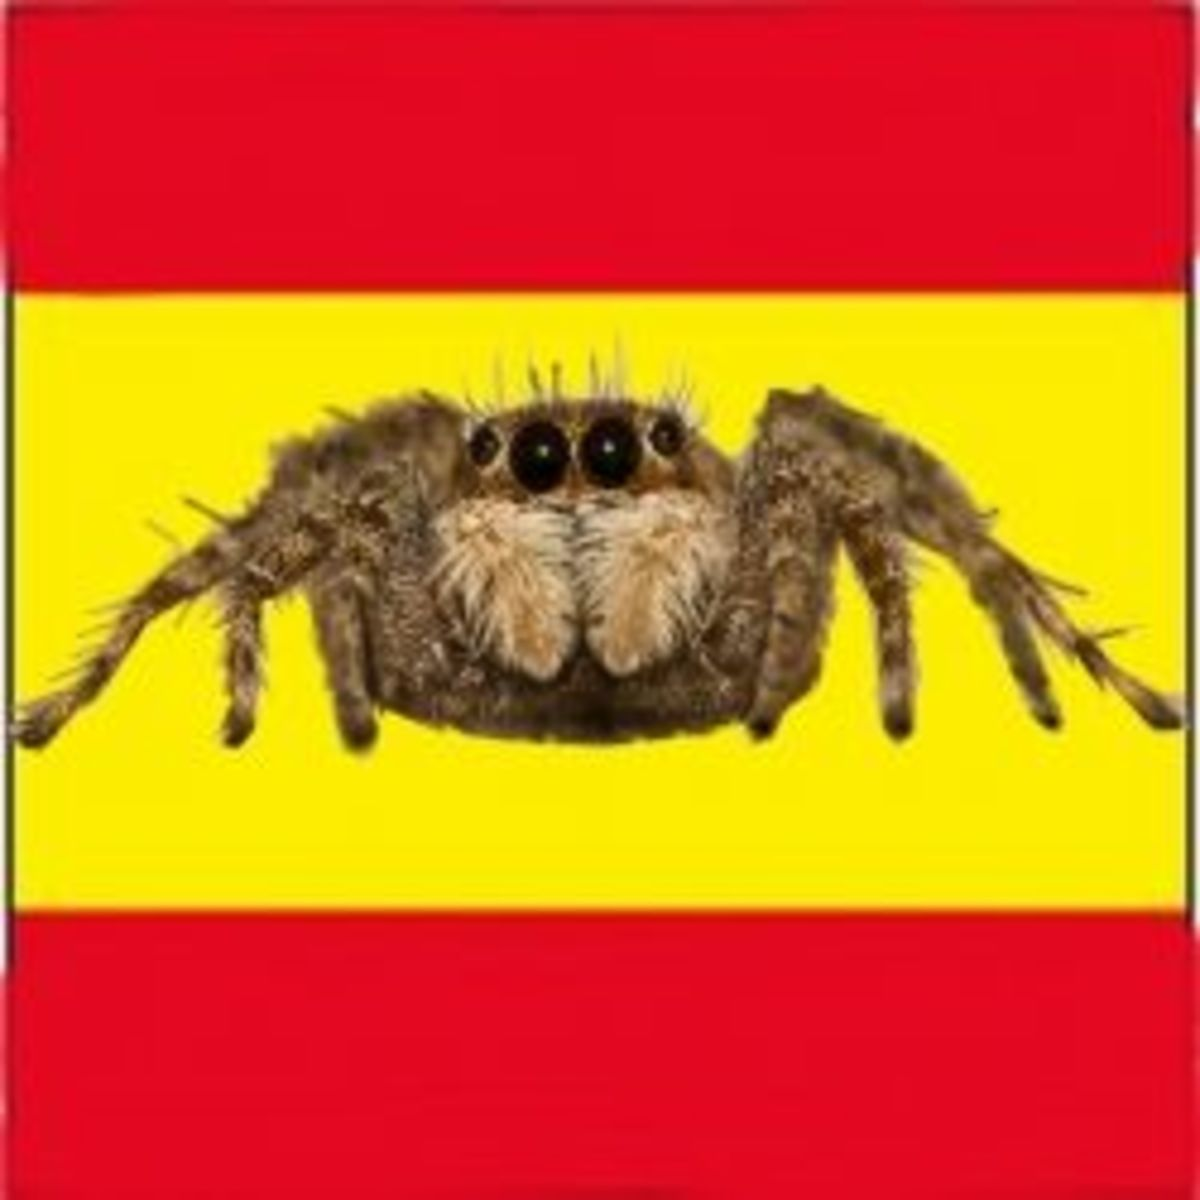 Dangerous Creatures of Spain